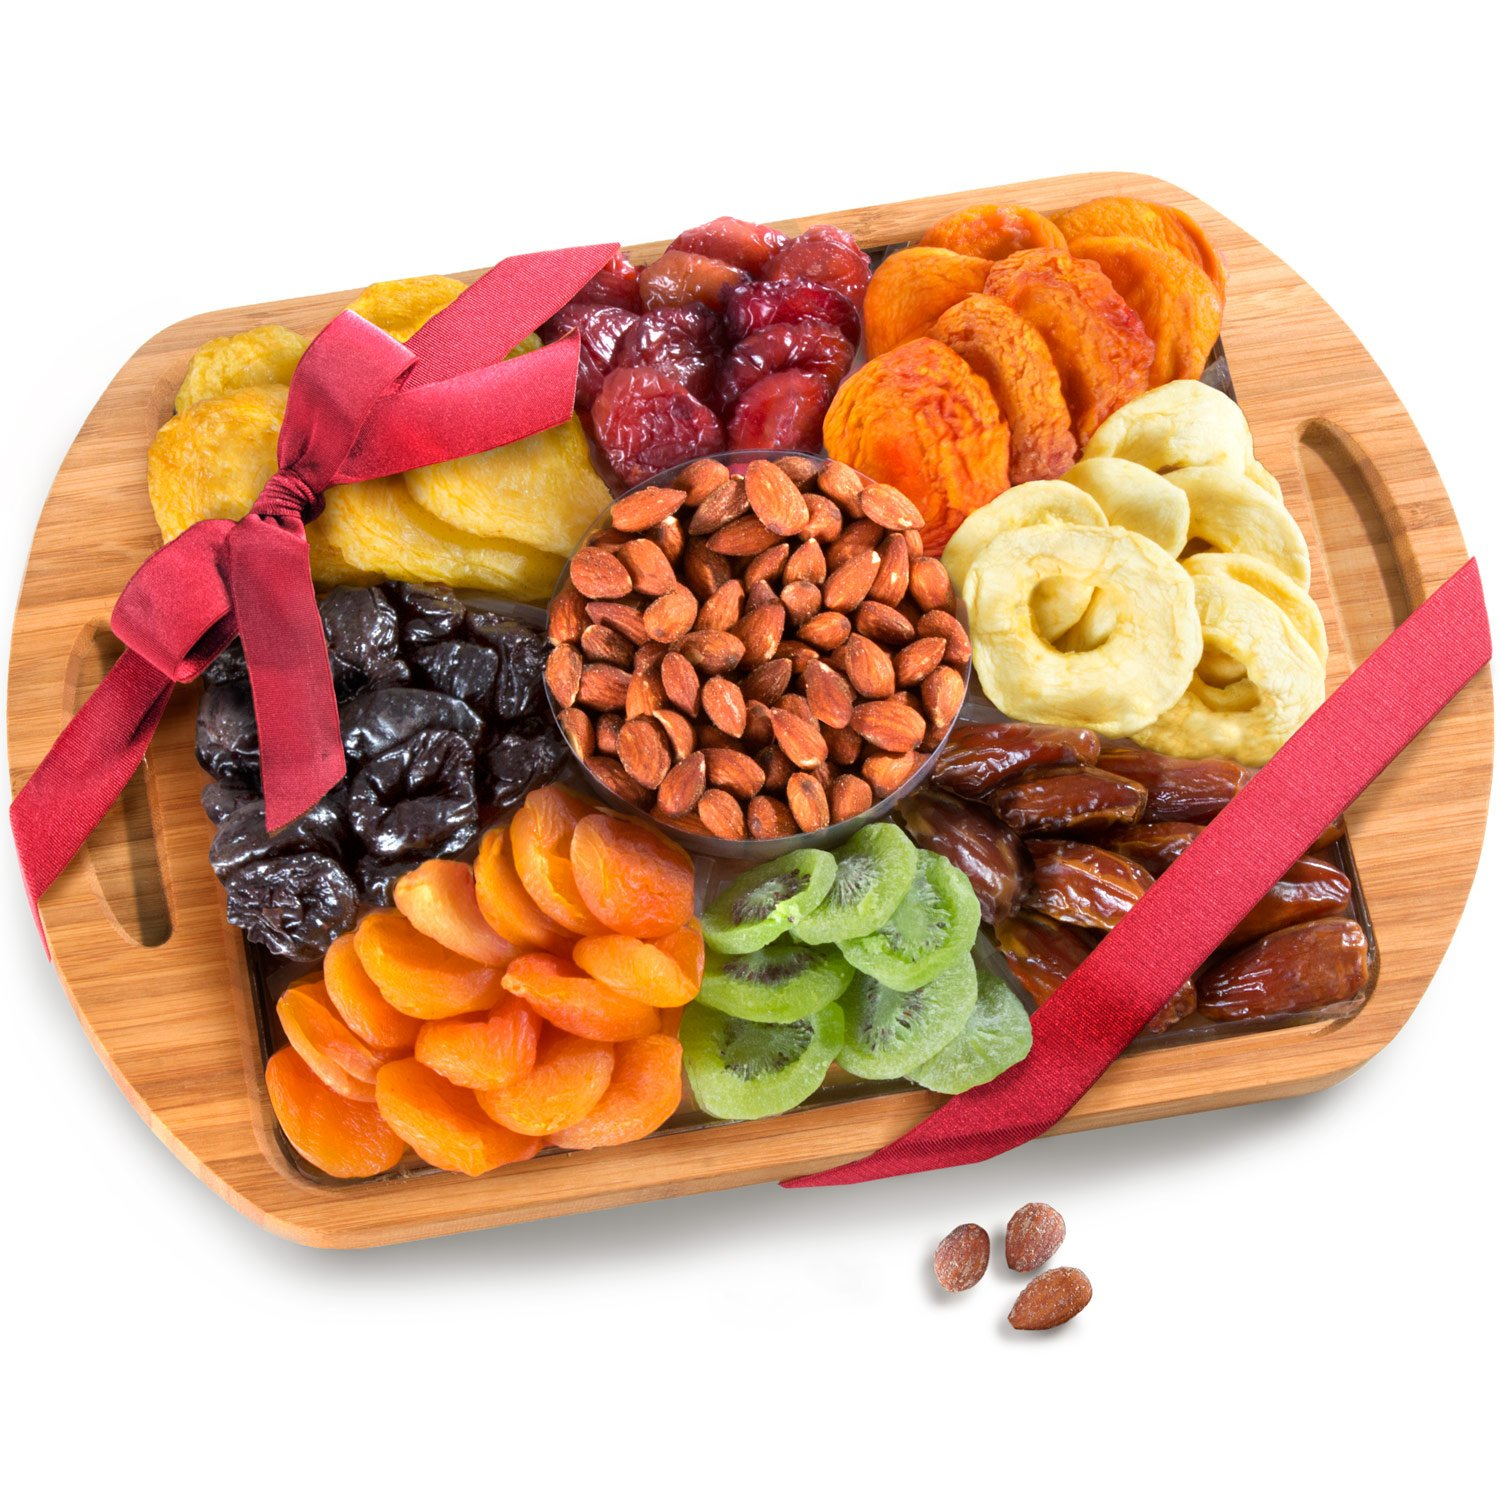 Golden State Fruit Dried Fruit and Nuts In Keepsake Bamboo Cutting Board Serving Tray with Handles by Golden State Fruit